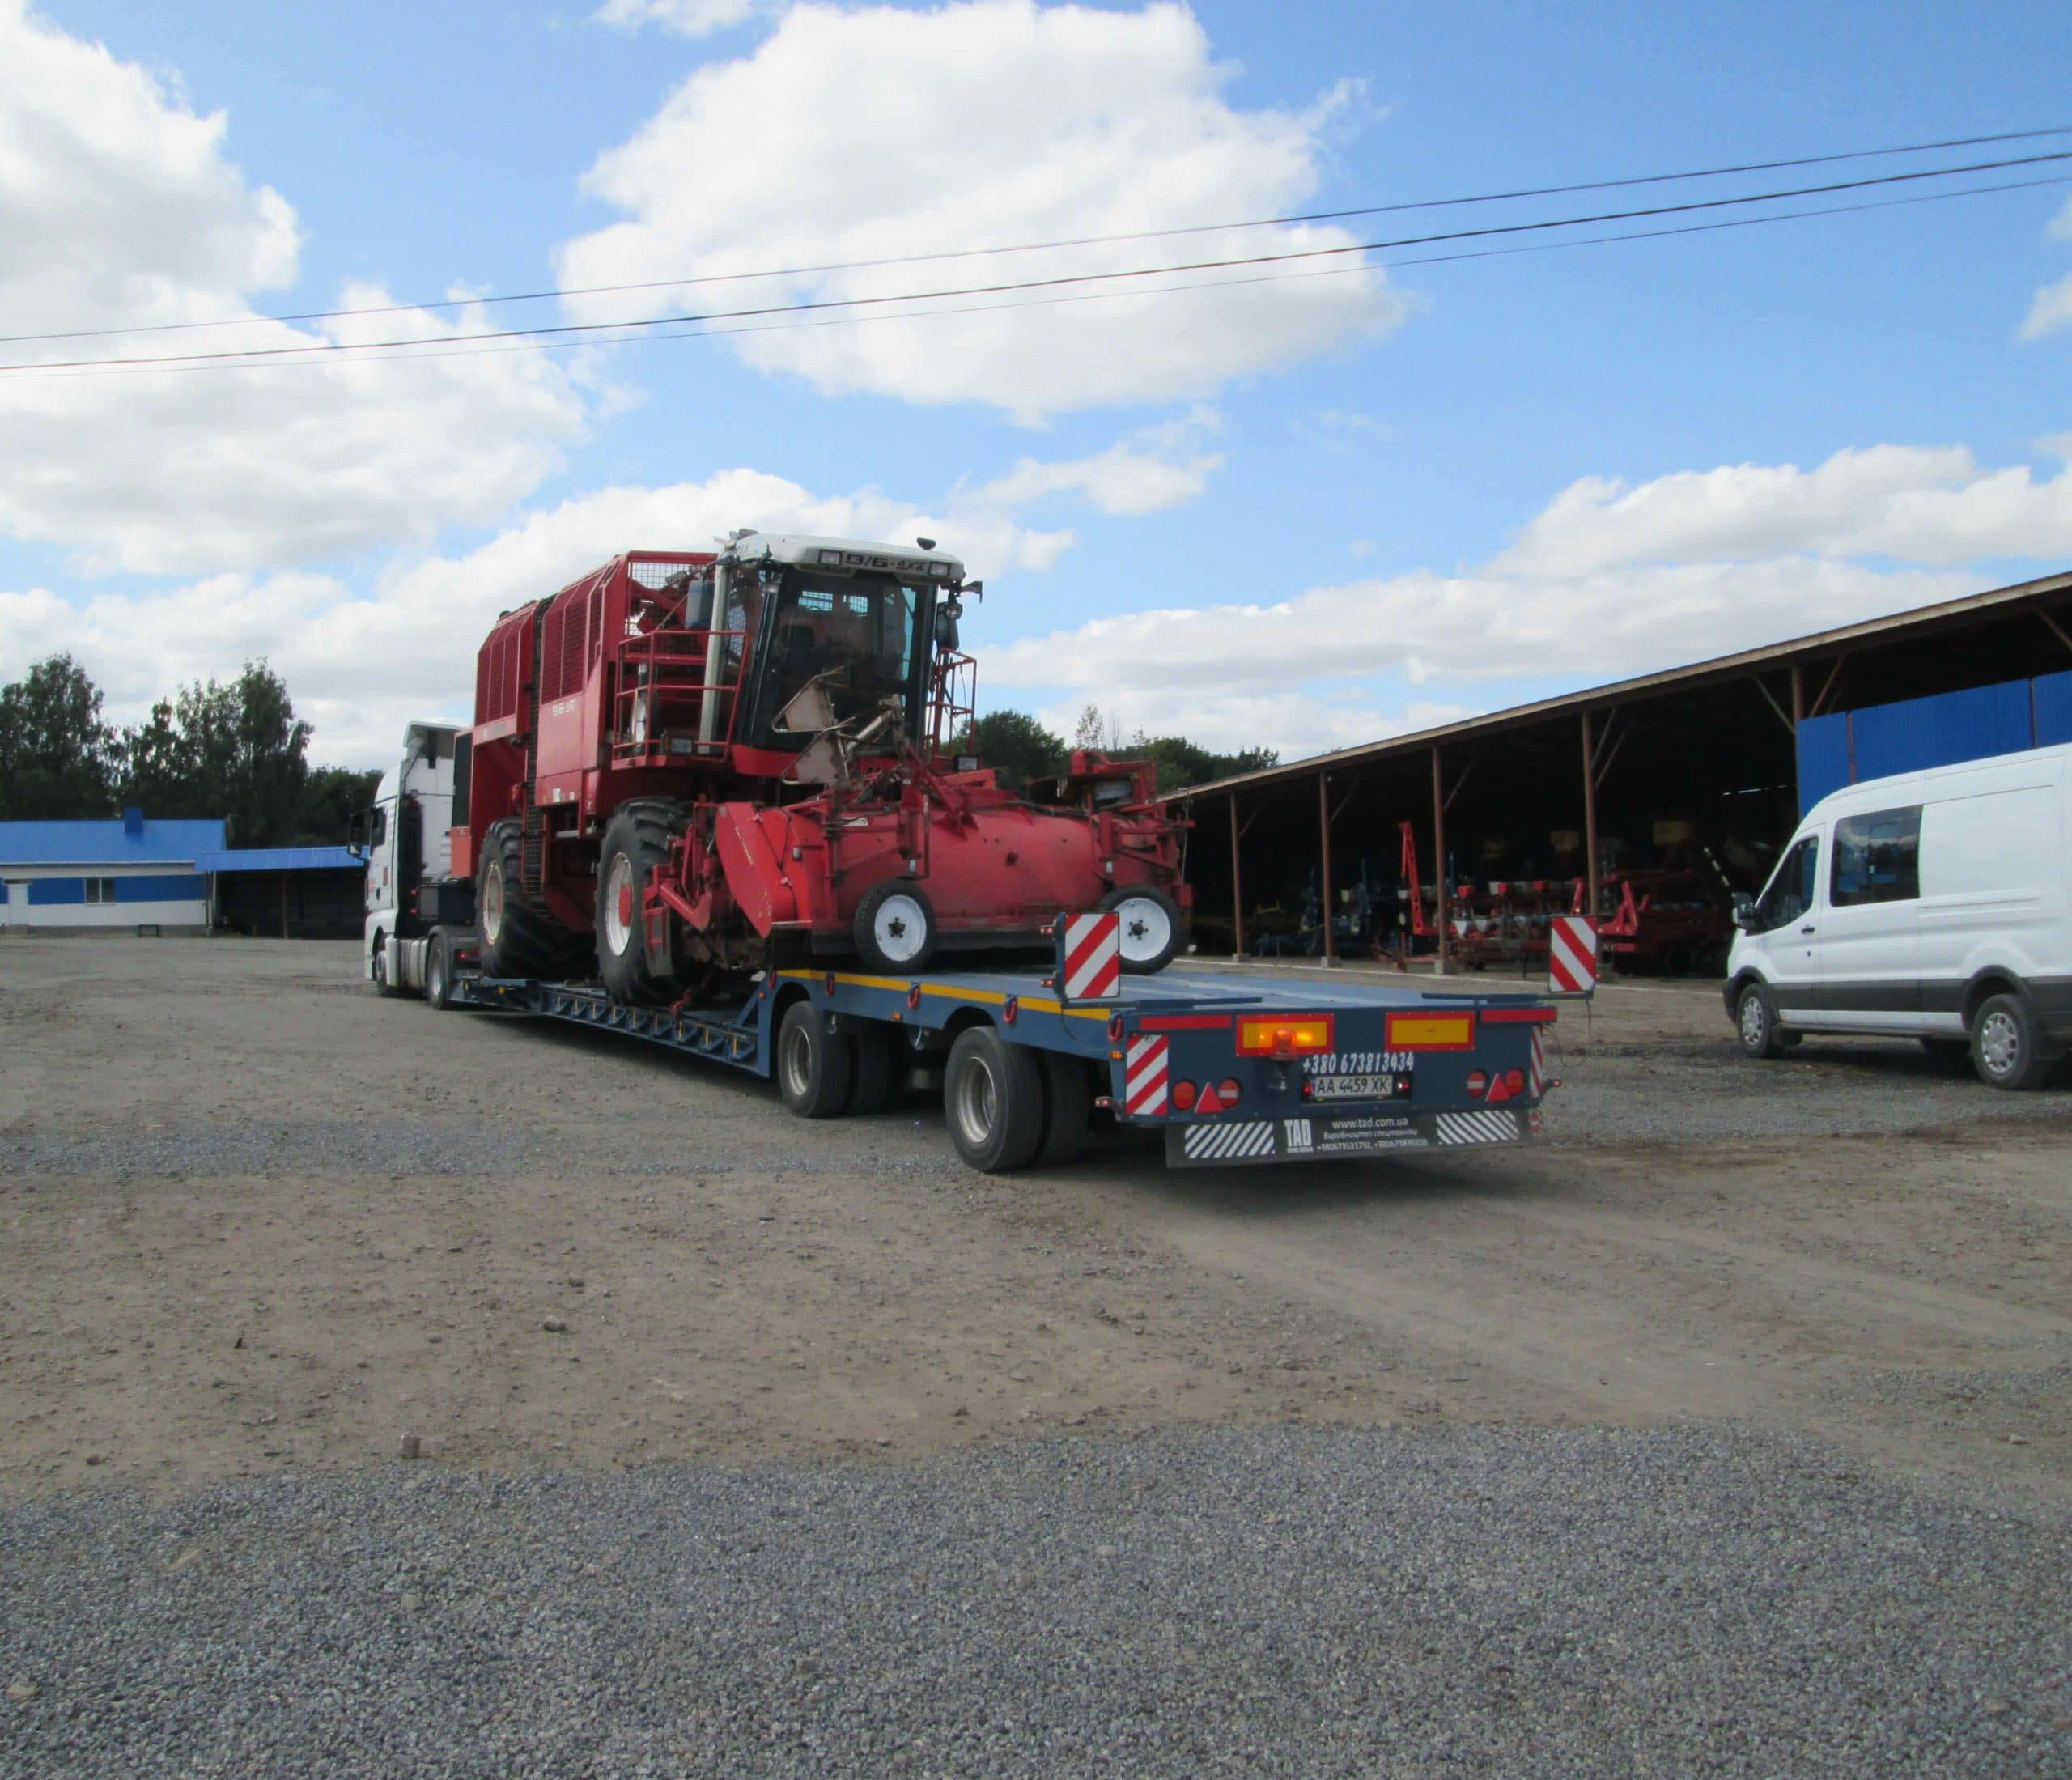 Combine harvester transportation